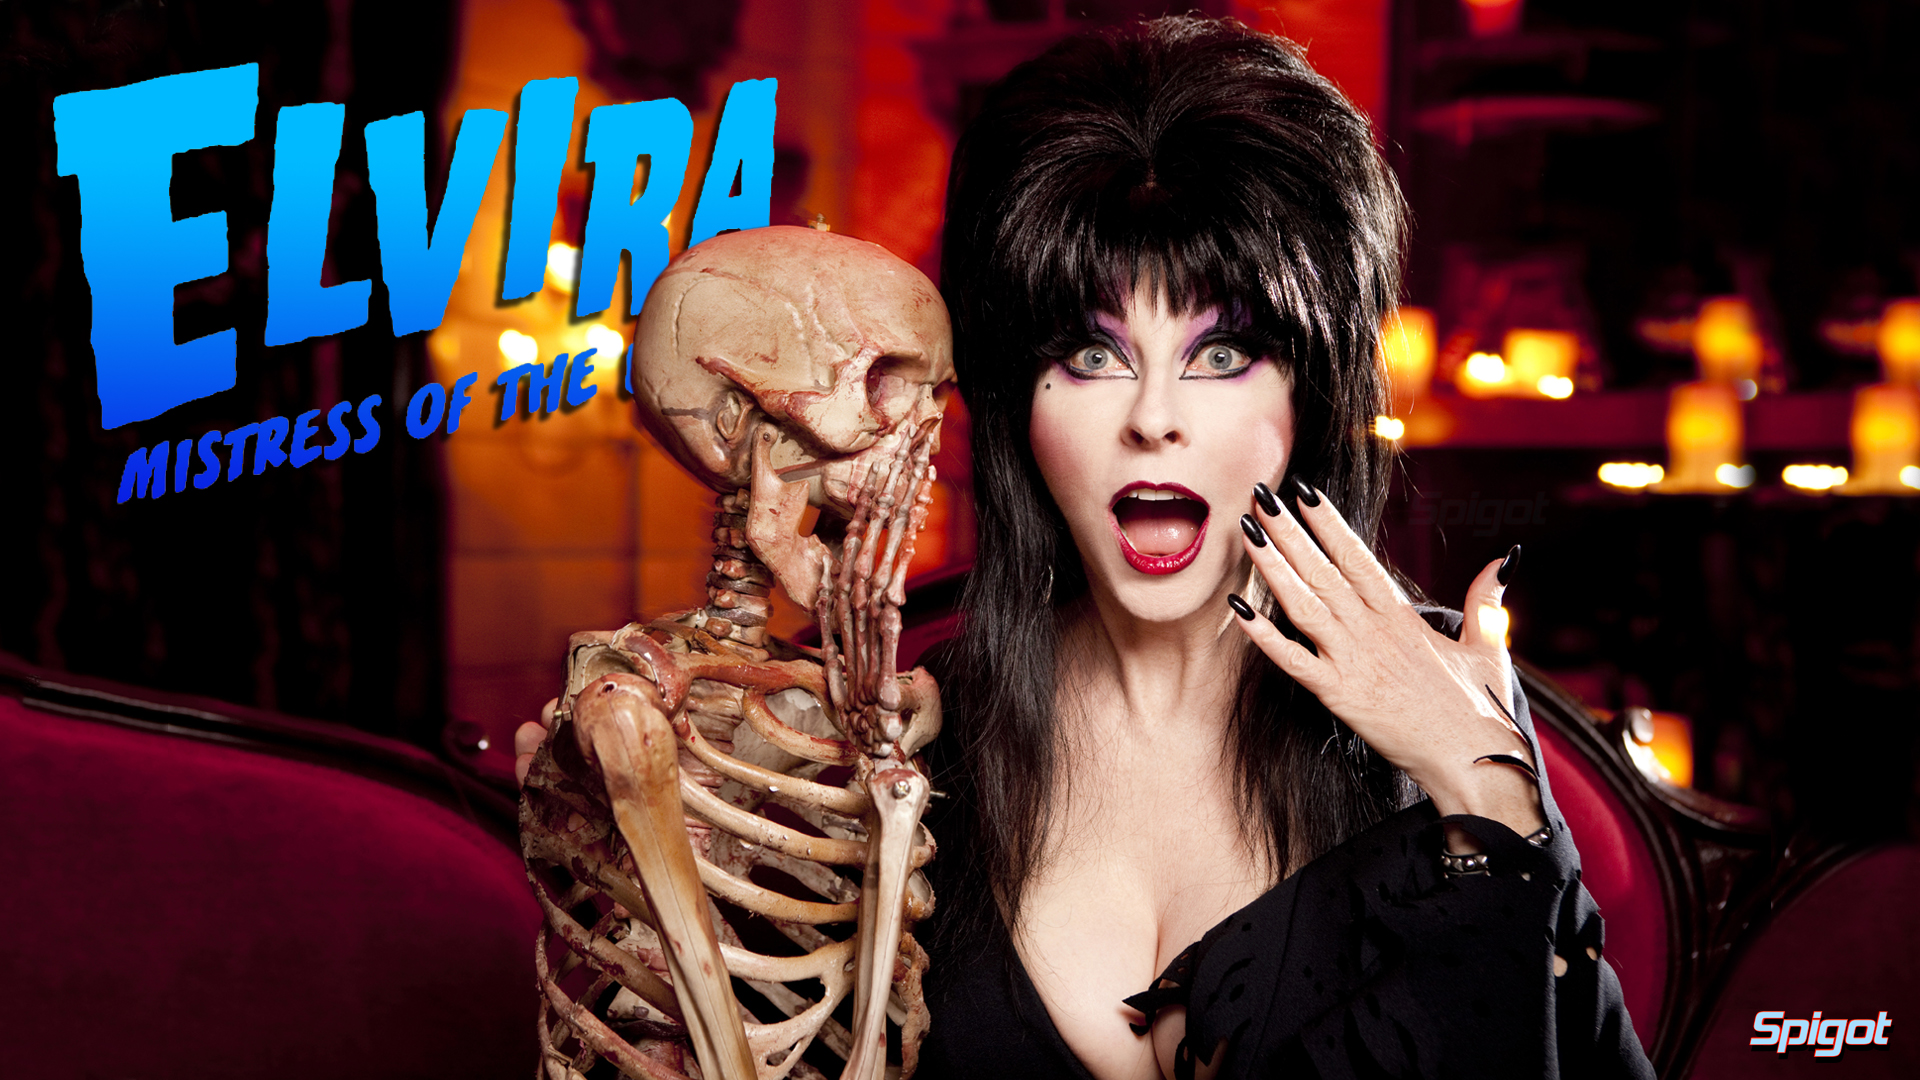 Elvira Wallpaper George Spigots Blog 1920x1080